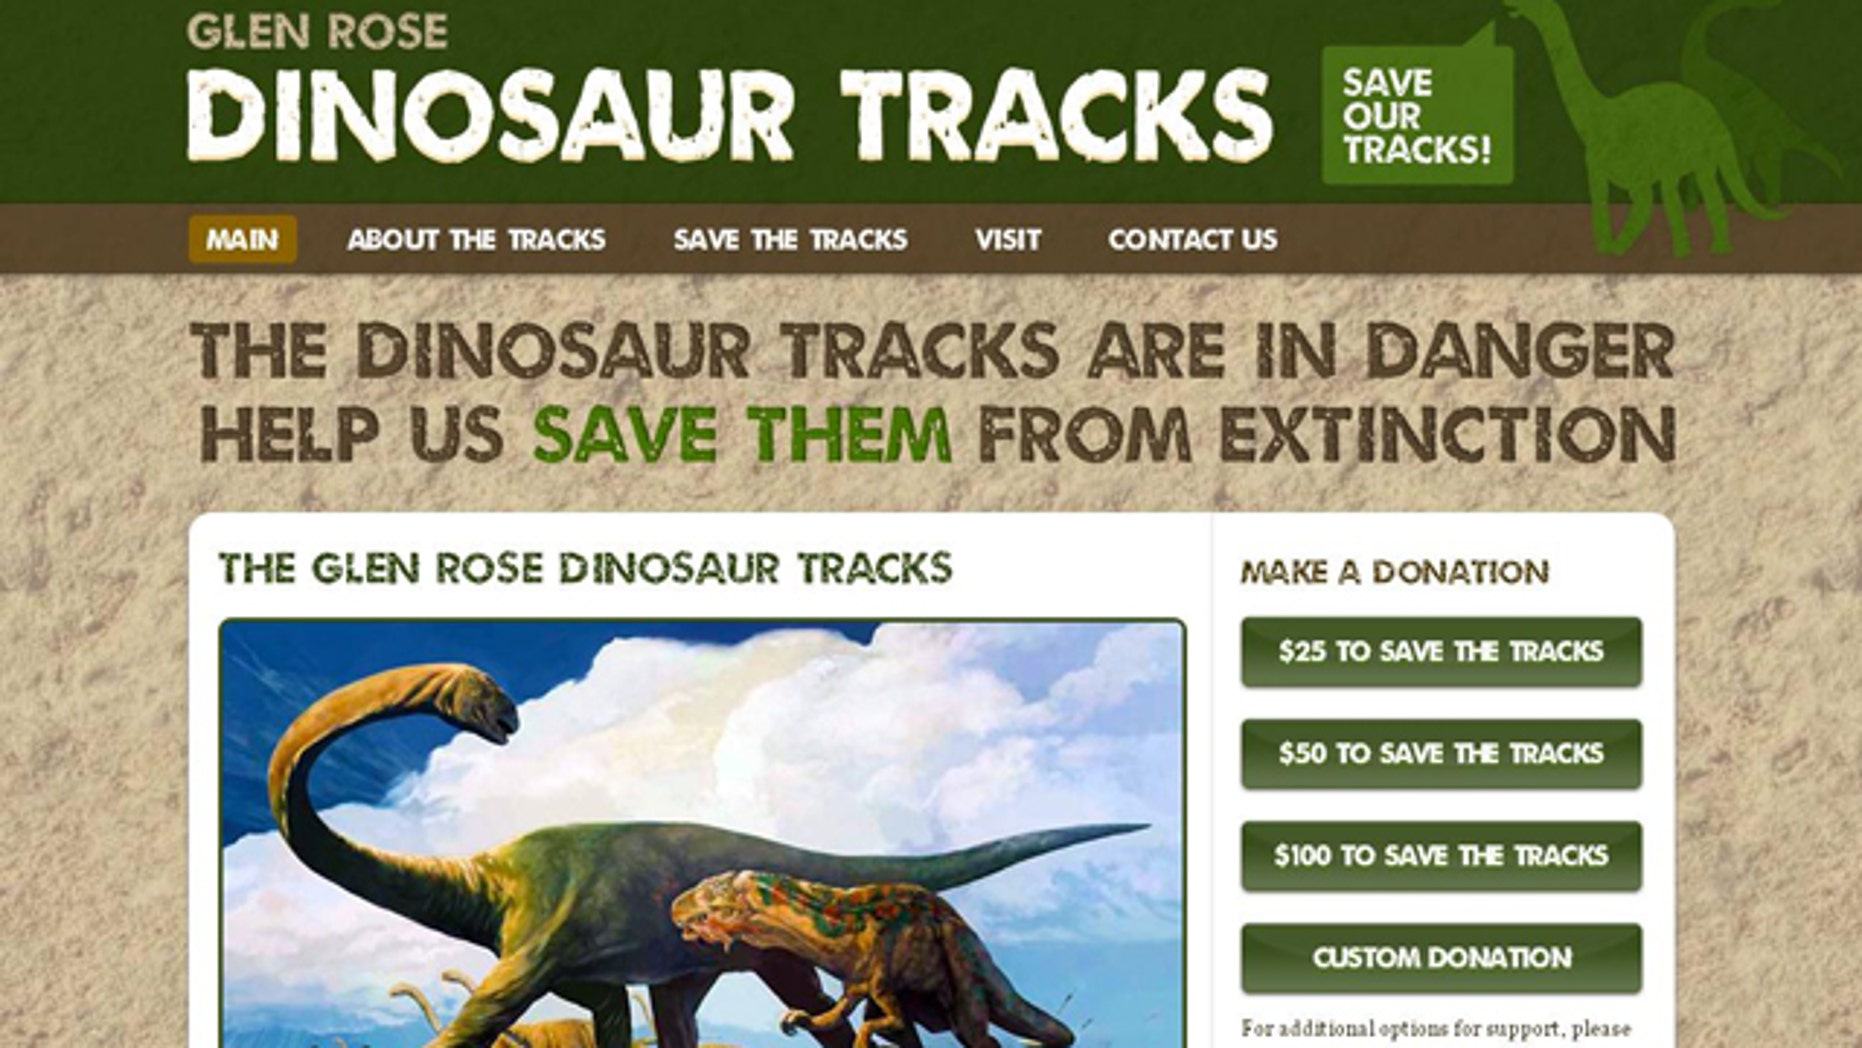 A screenshot of the website for the Glen Rose Dinosaur tracks offers information on the find and how visitors can help protect the ancient footsteps.